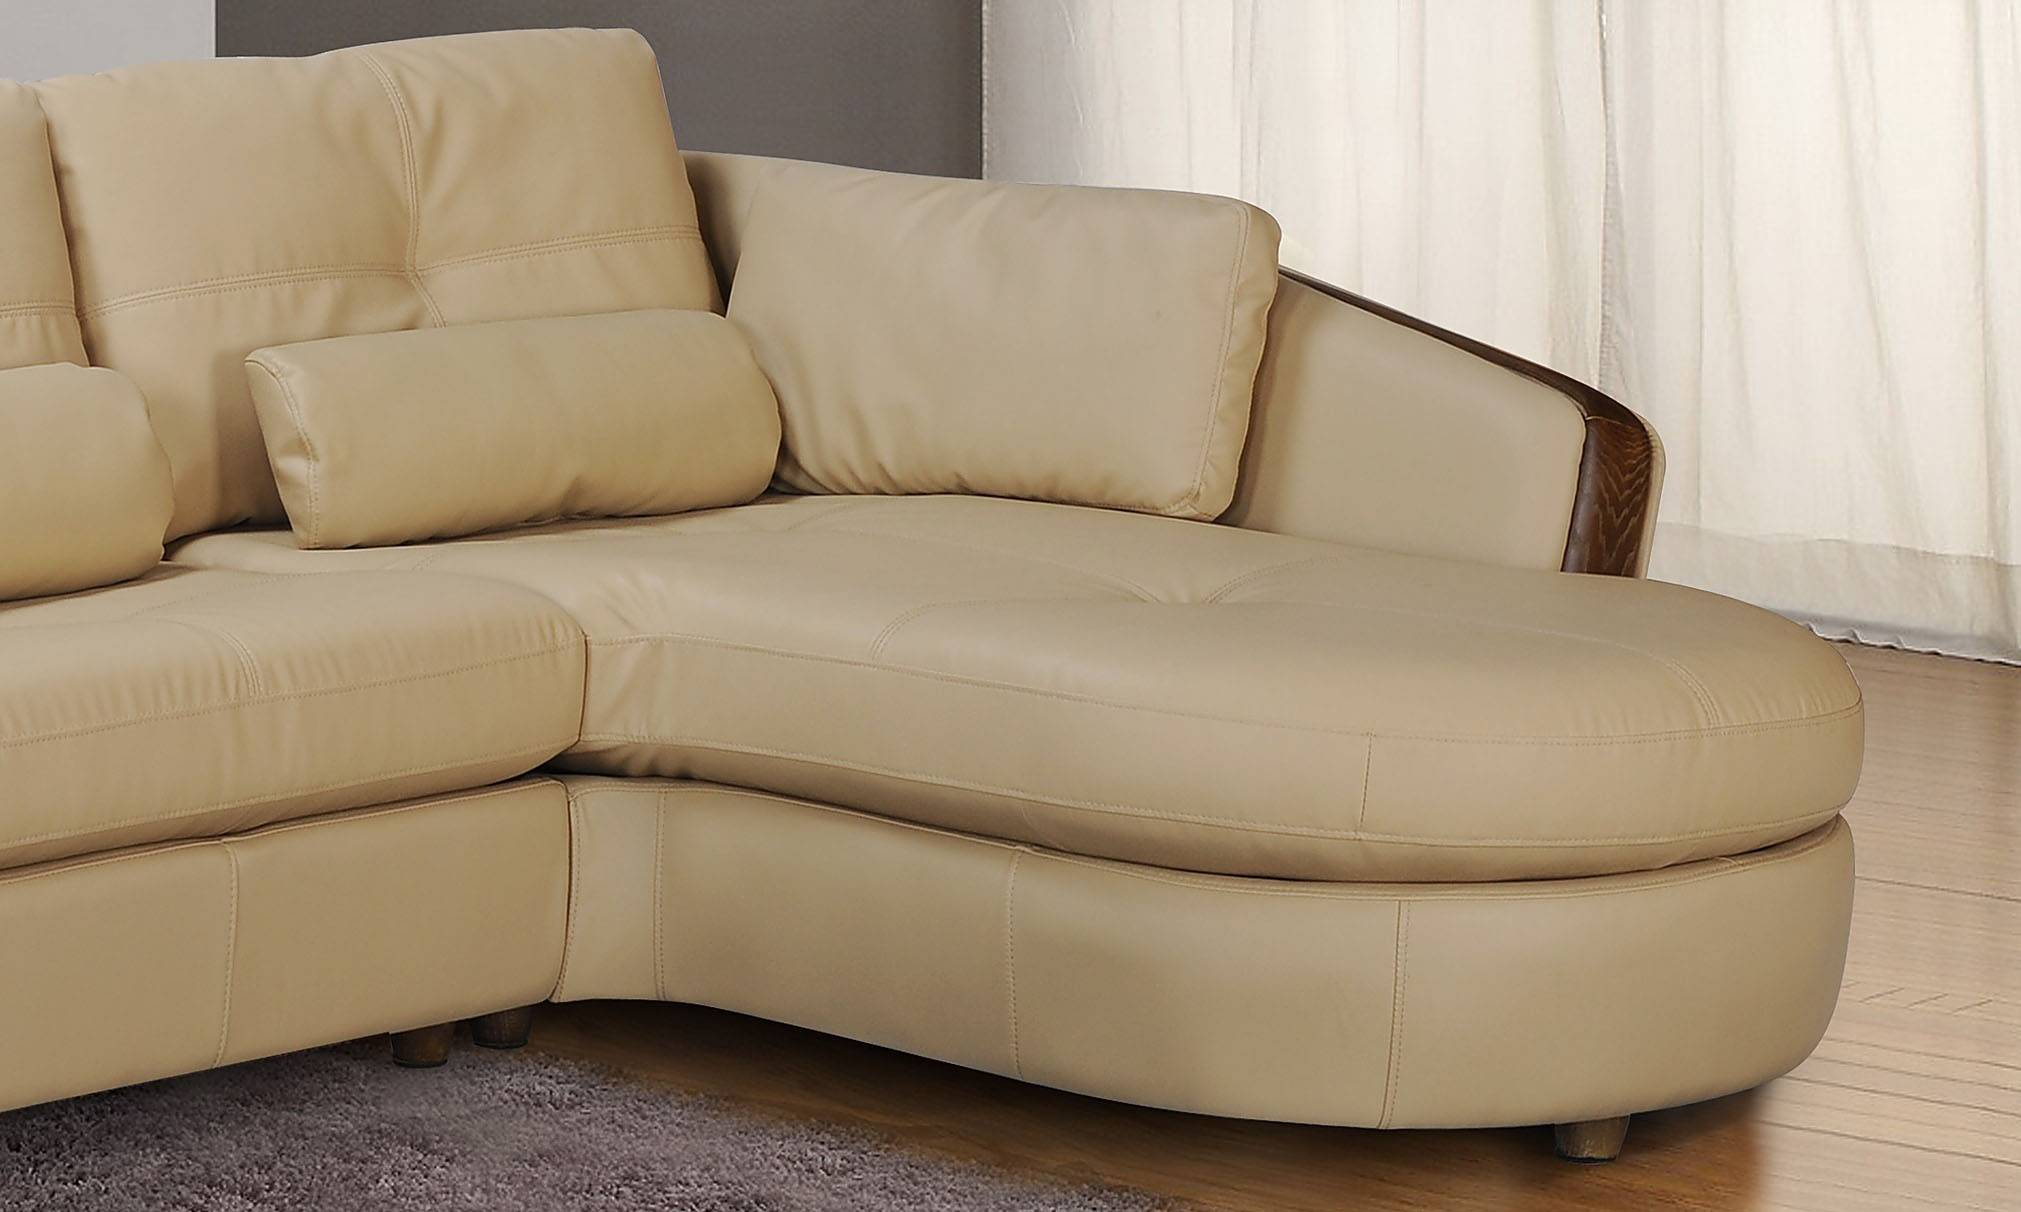 Taupe Bonded Leather Sectional Sofa with Ash Wood Accent Baltimore